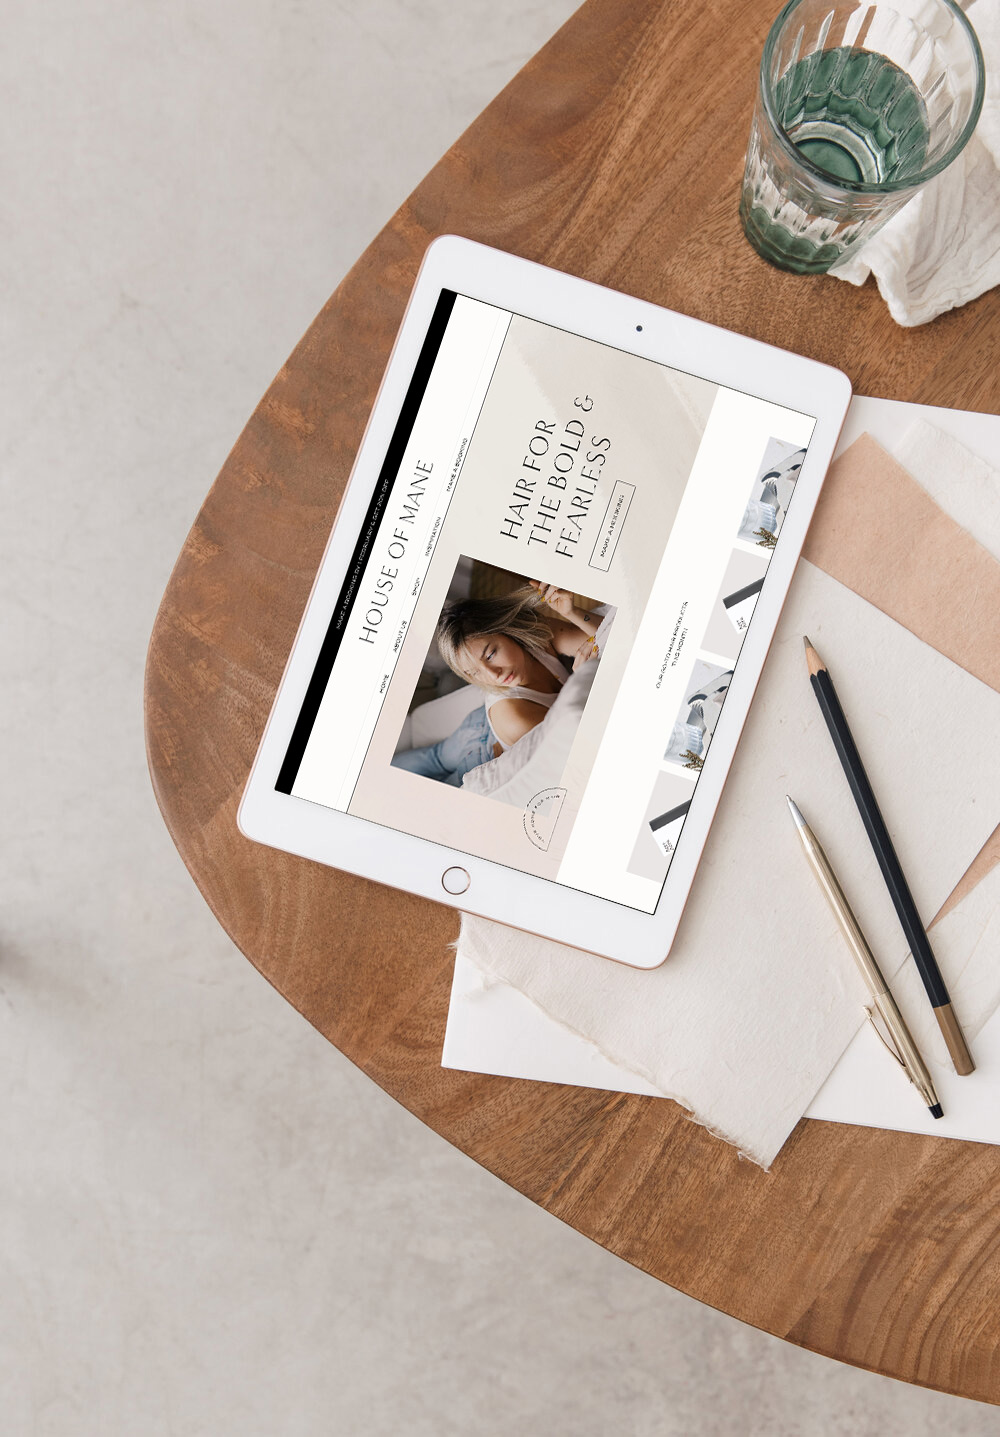 Website for high-end hair salon on a white ipad next to stationery